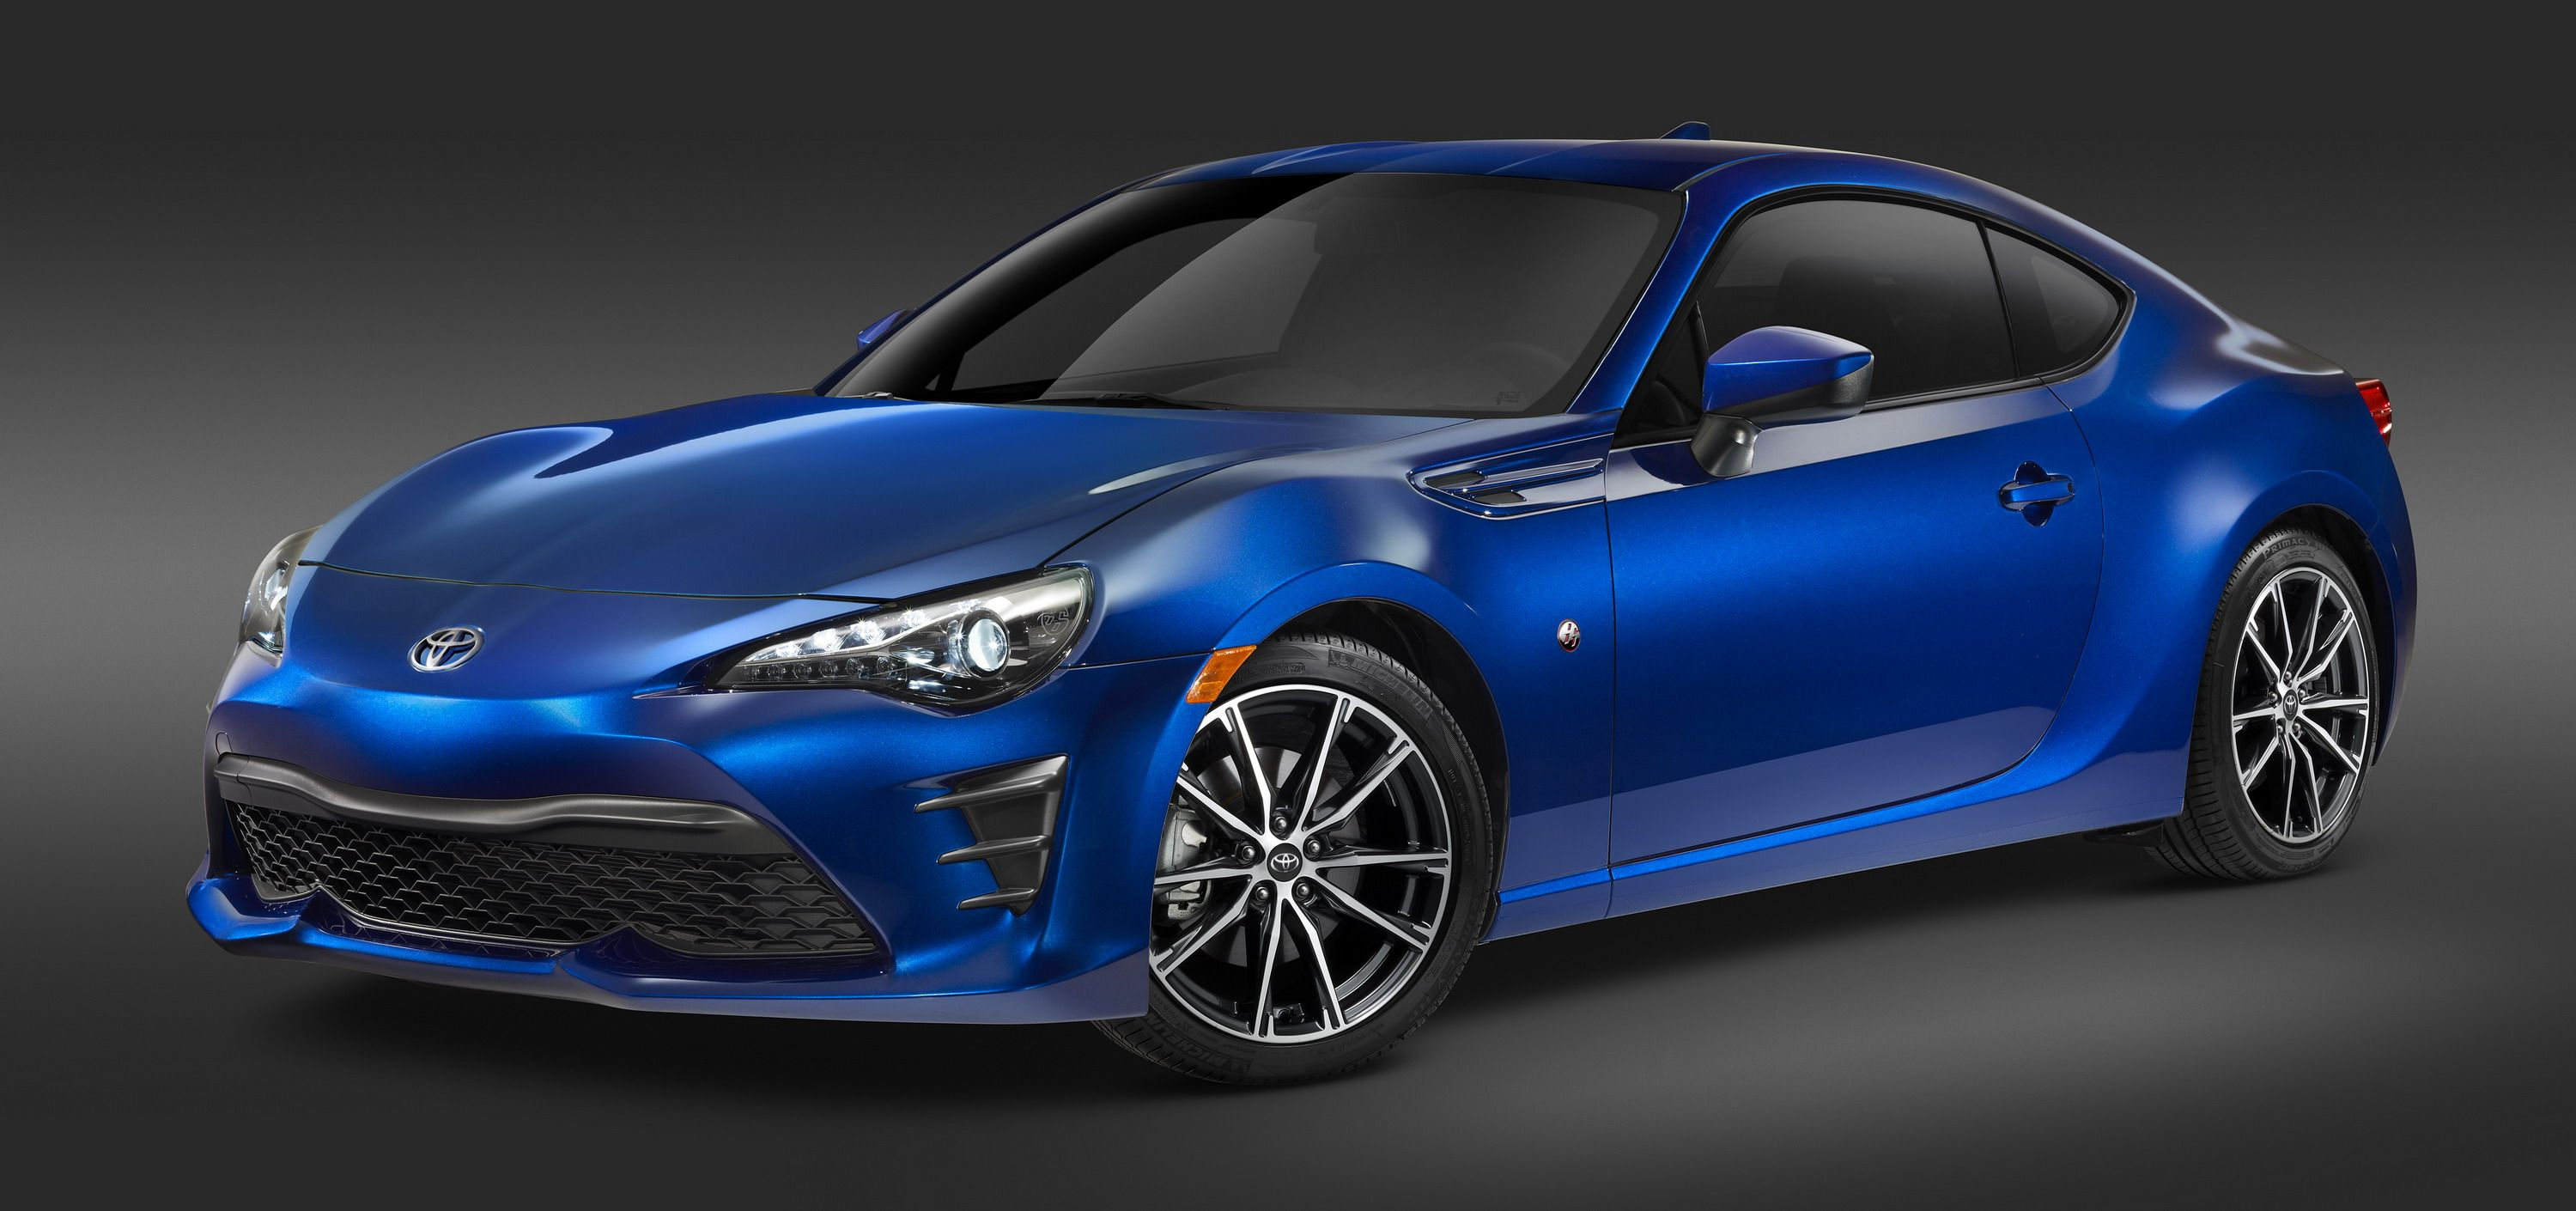 Chief Engineer Of The Toyota 86 And Subaru Brz Says No Turbo For You Not In This Generation Buddy Toyota 86 Toyota Gt86 Sports Car